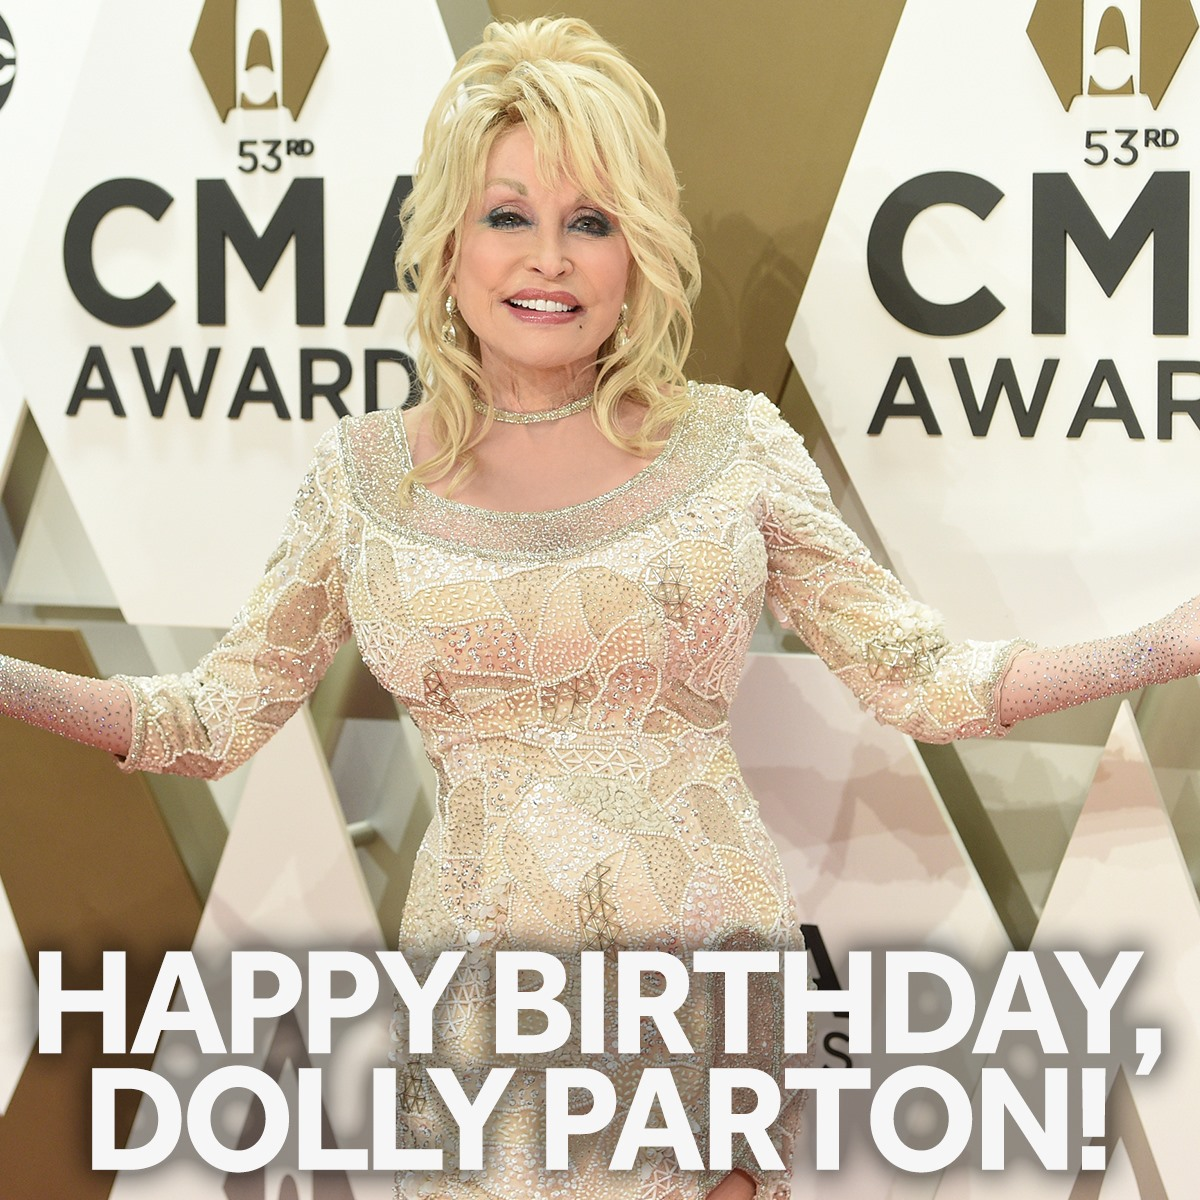 HAPPY BIRTHDAY, DOLLY! ⭐️🎂⭐️ The Queen of Country Dolly Parton turns 75 today!